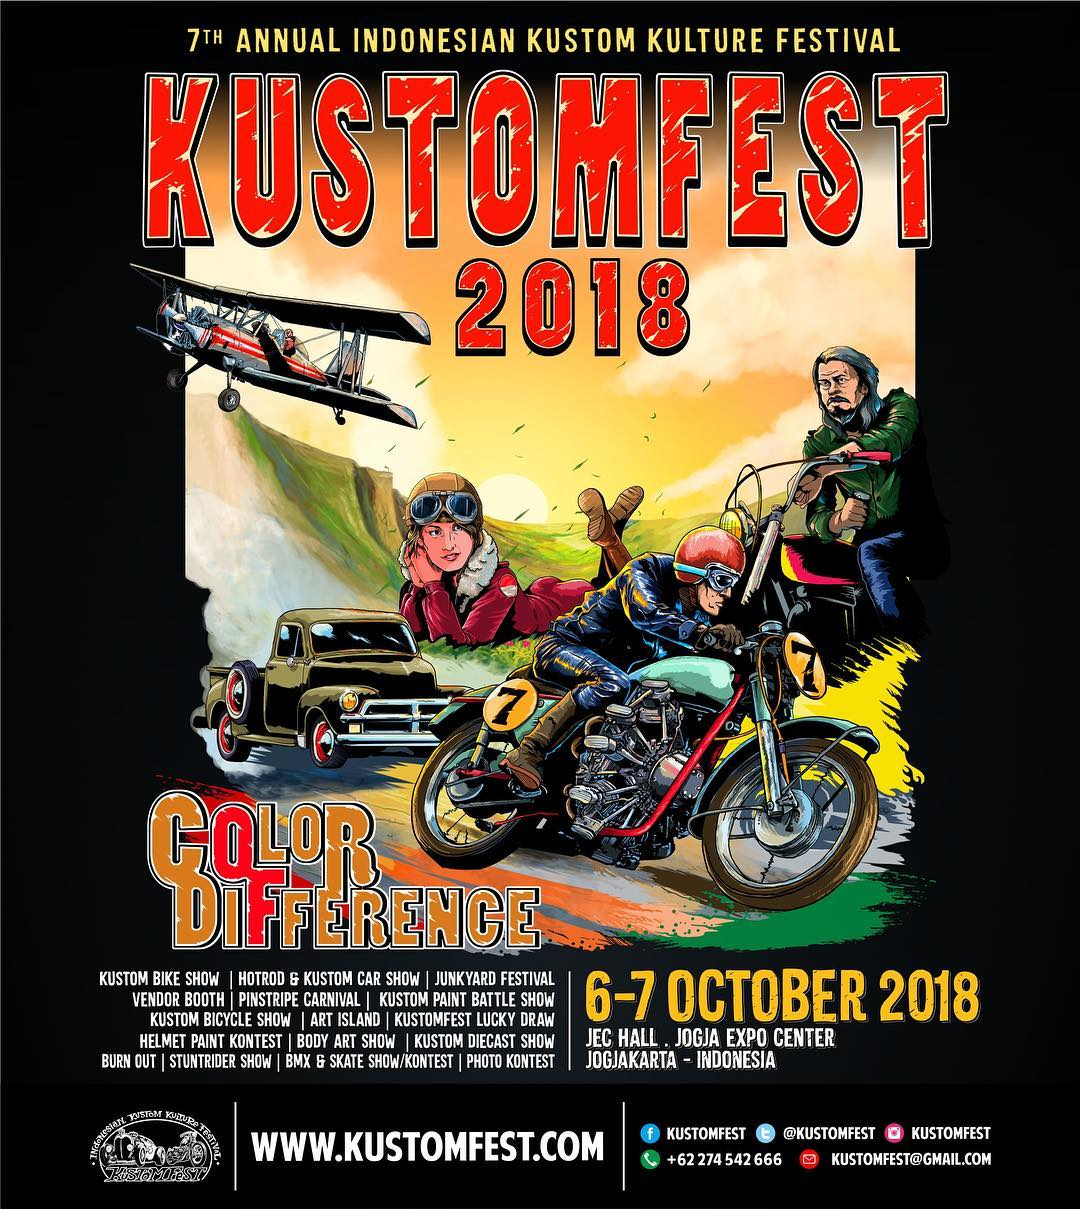 KustomFest 2018 - Color of Difference